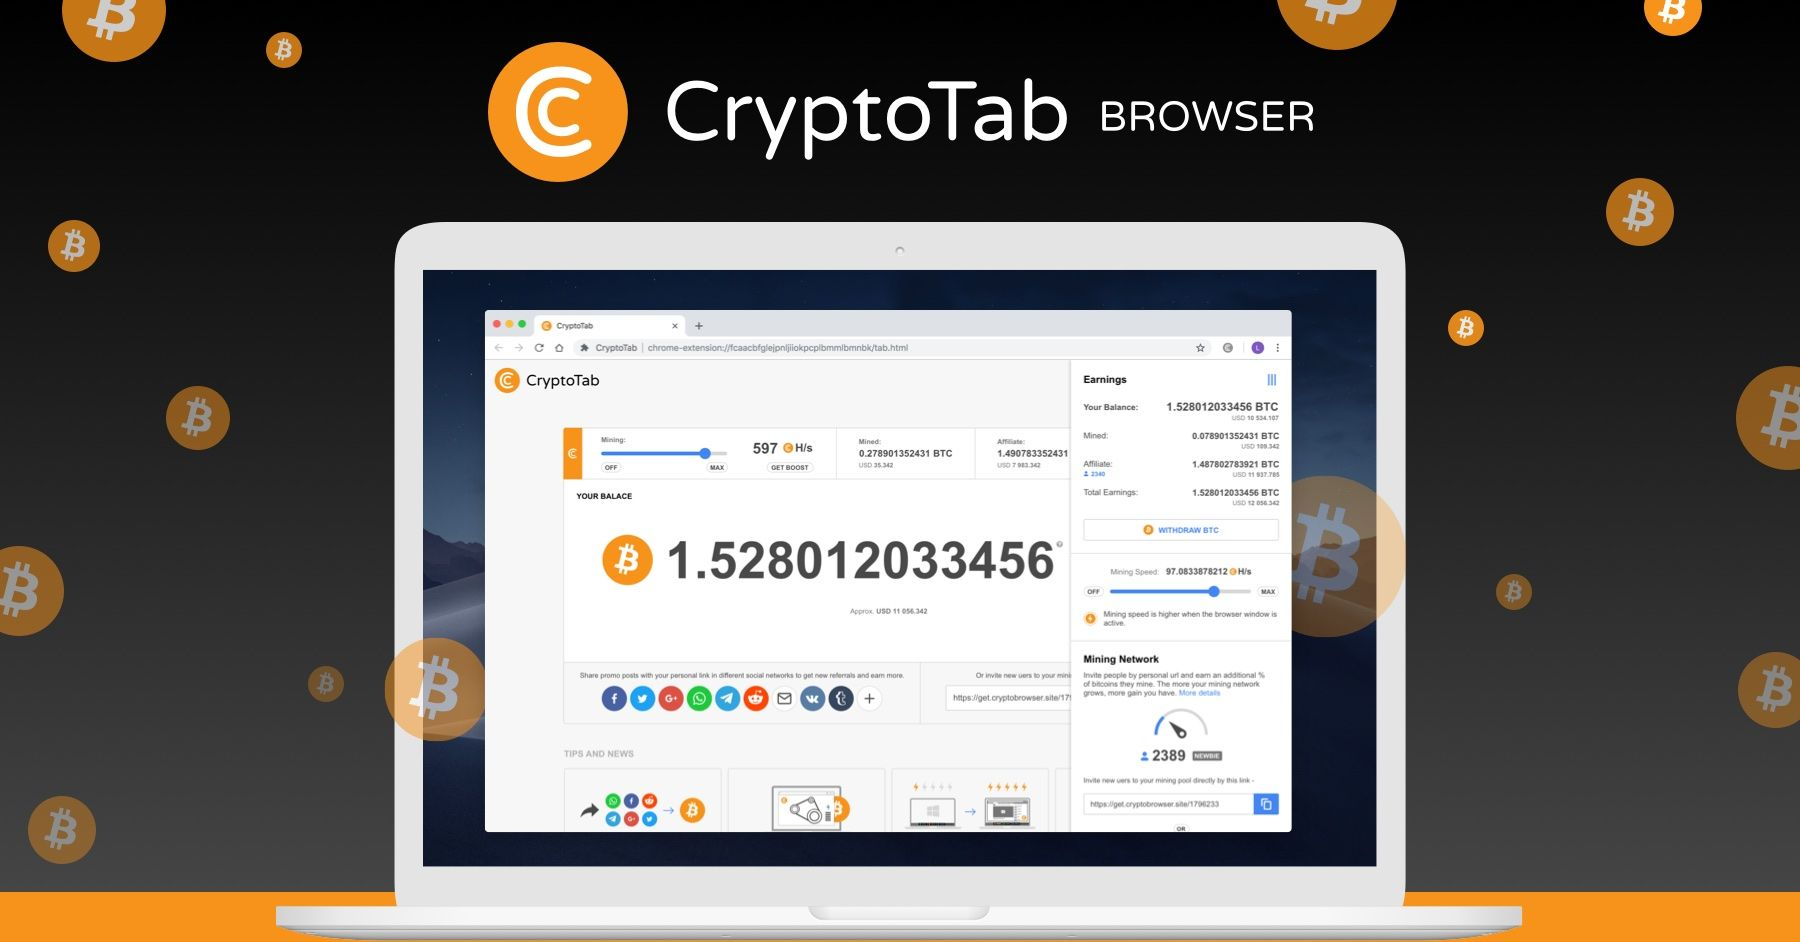 Try the new CryptoTab browser featuring a built-in mining algorithm